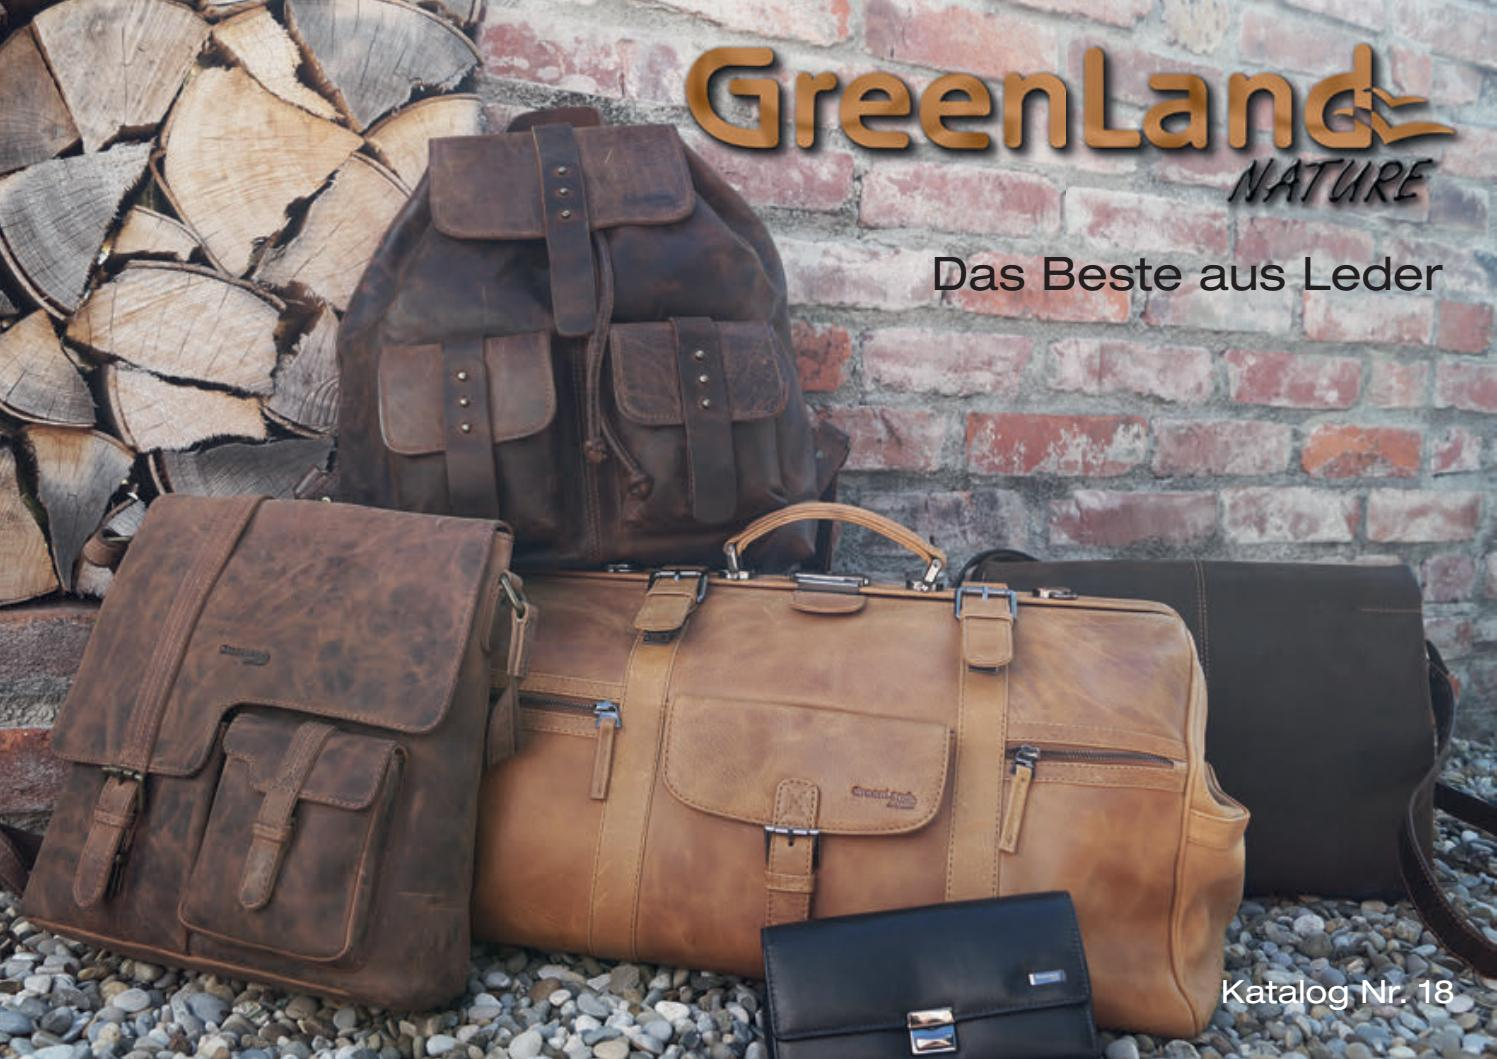 f06e3e3a5611d Greenland Nature Katalog by Susanne Cornelius - issuu